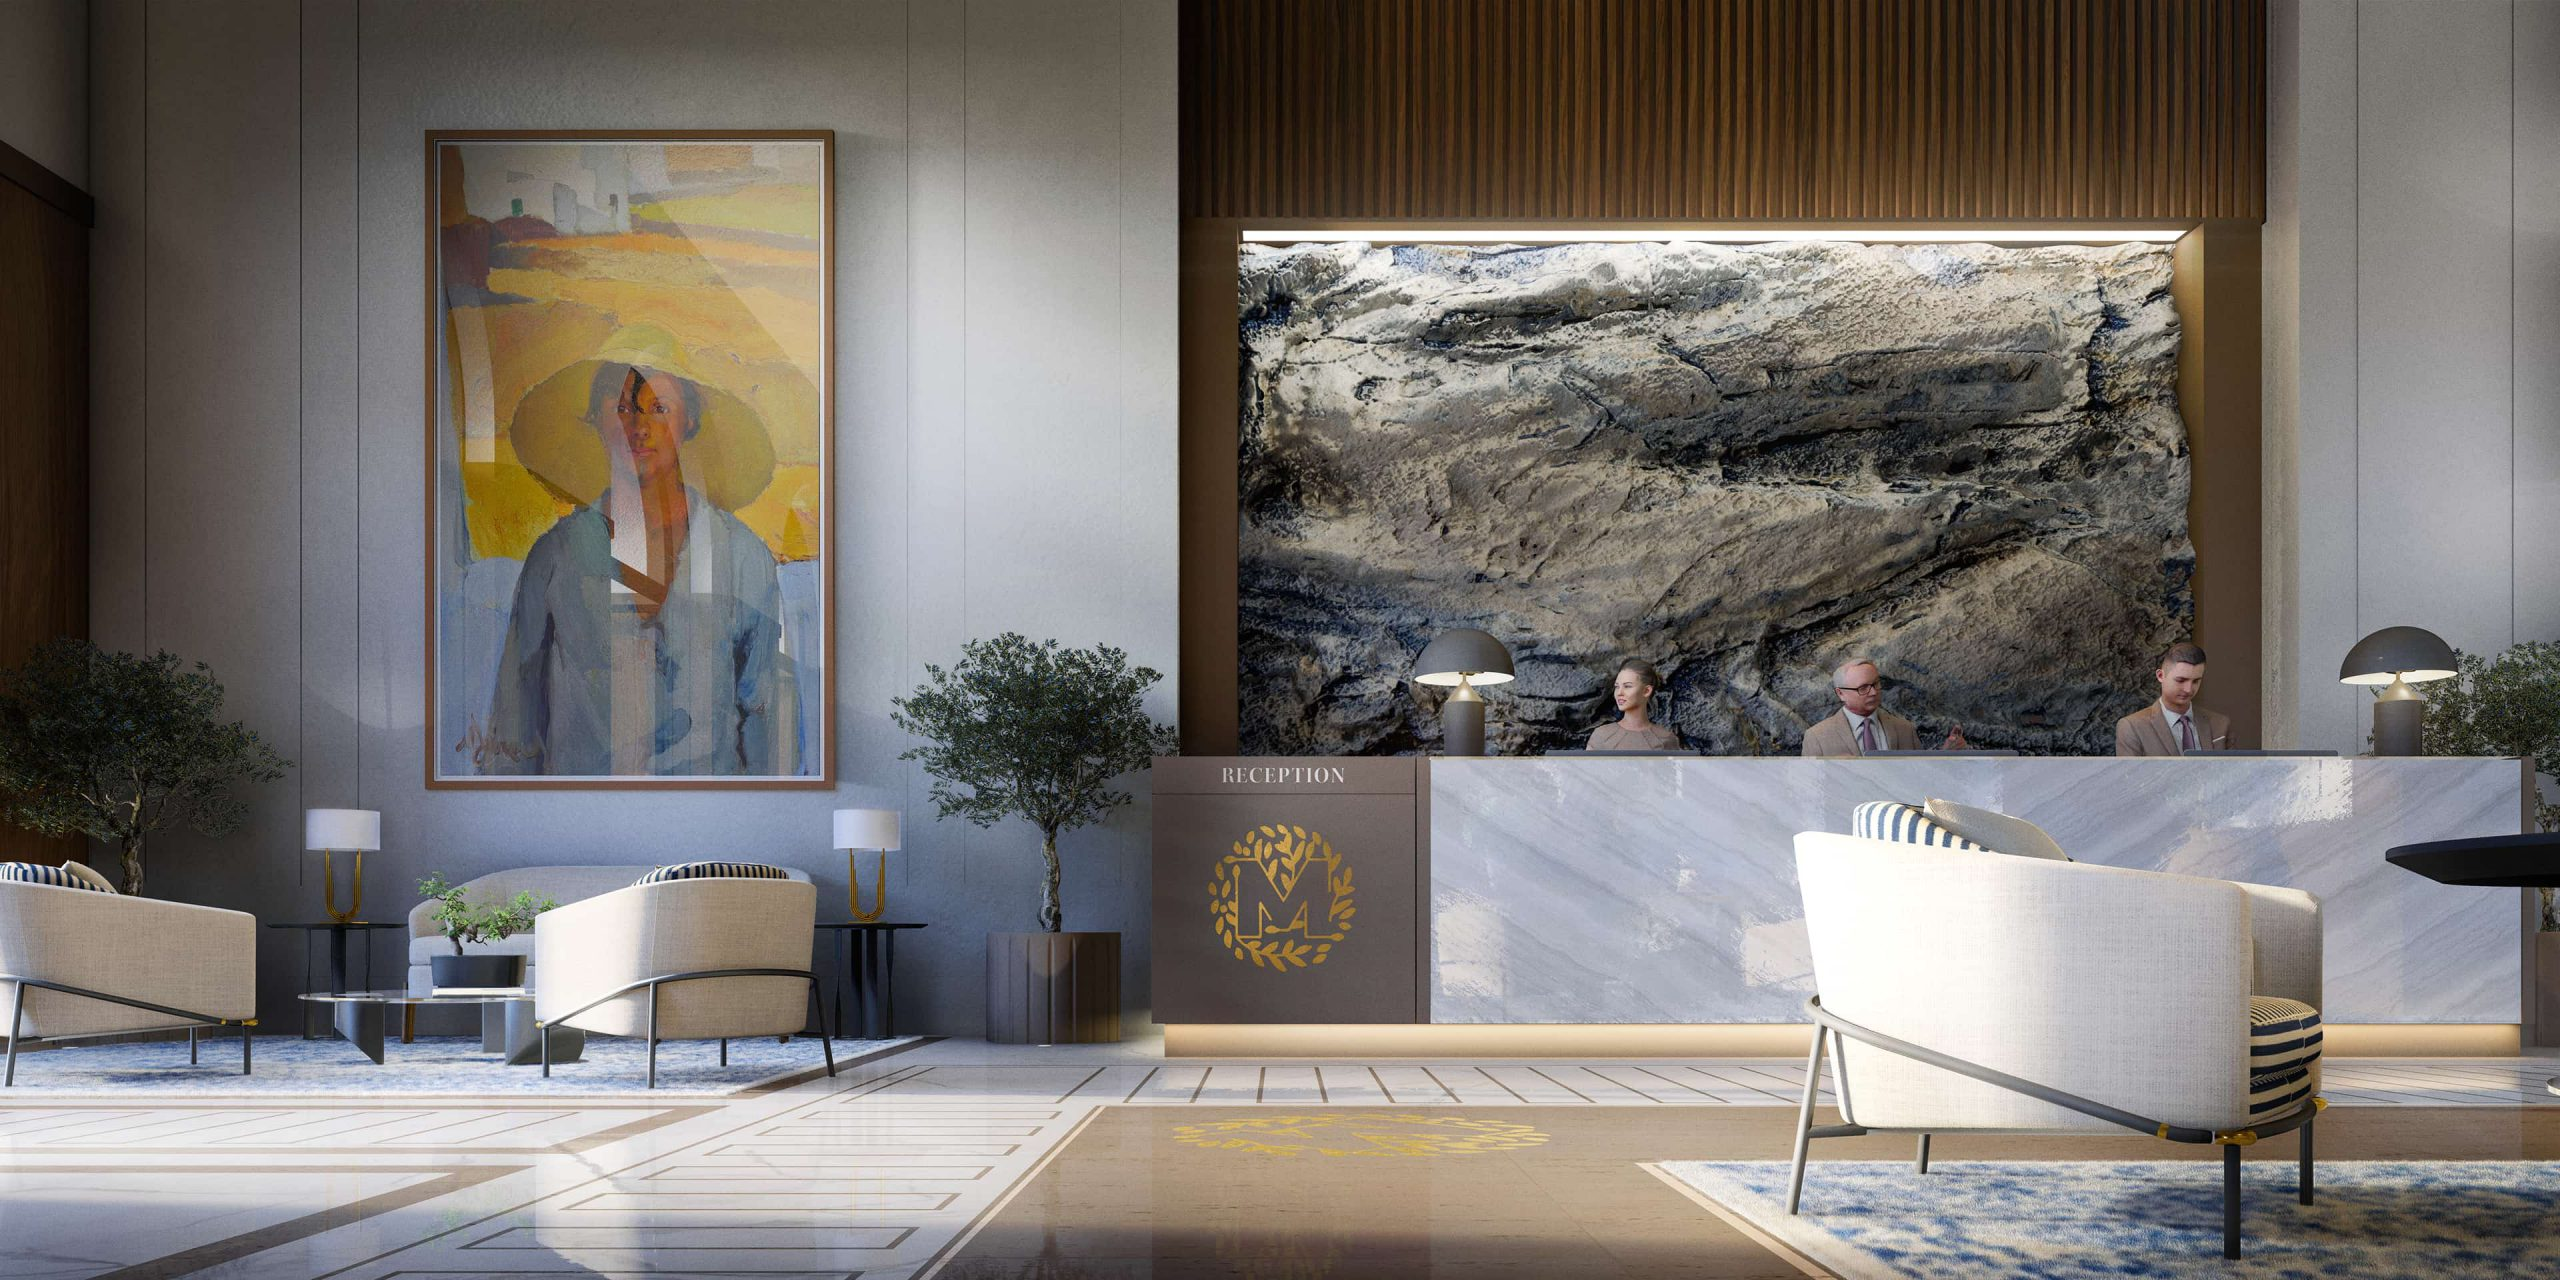 Lobby, Hotel Le Mas. Rendered in Lumion by Ten Over Media.